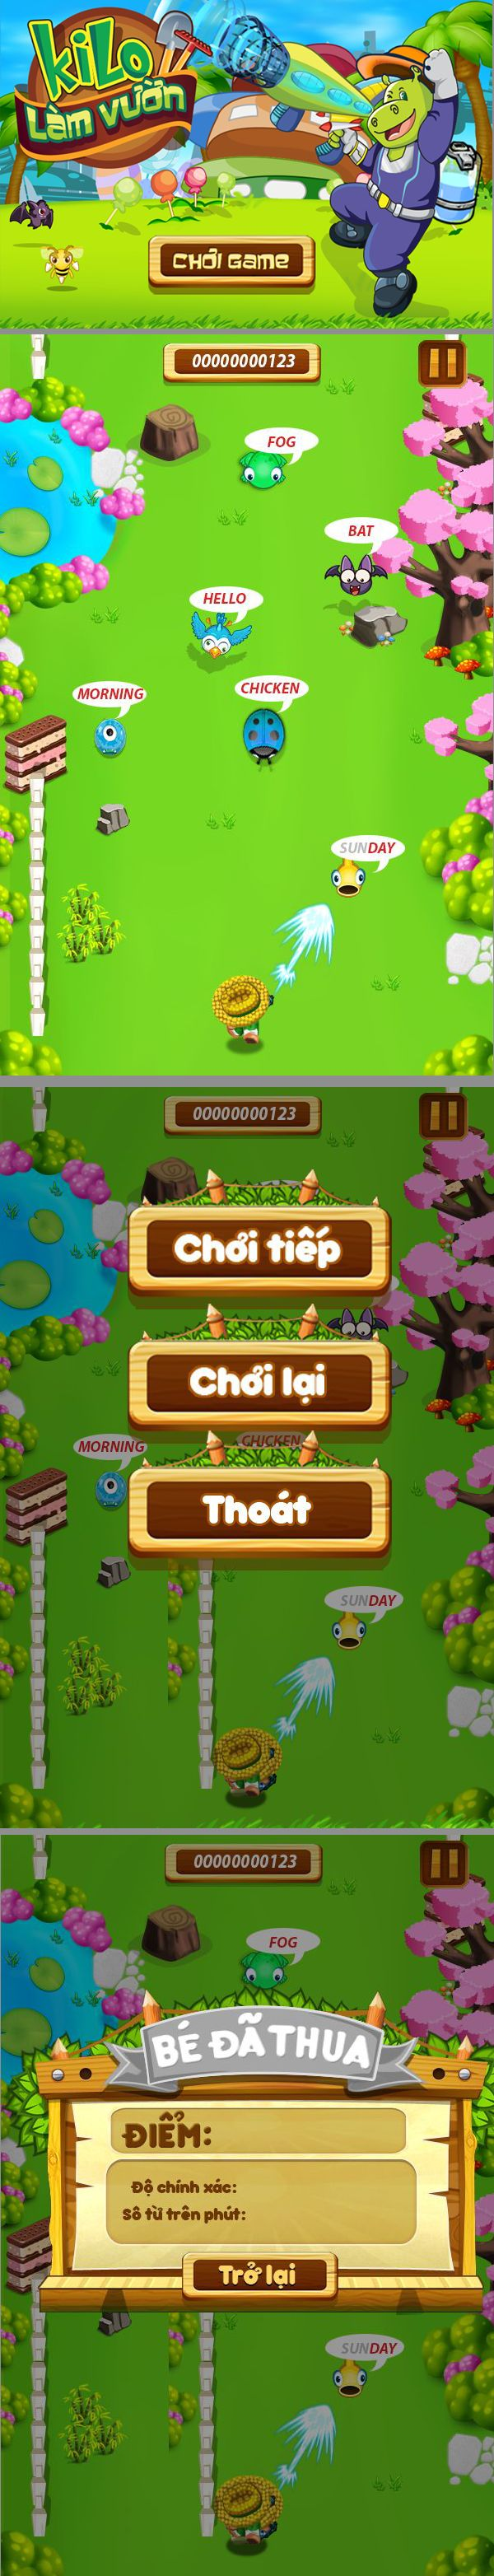 typping game  www.tiniplanet.com